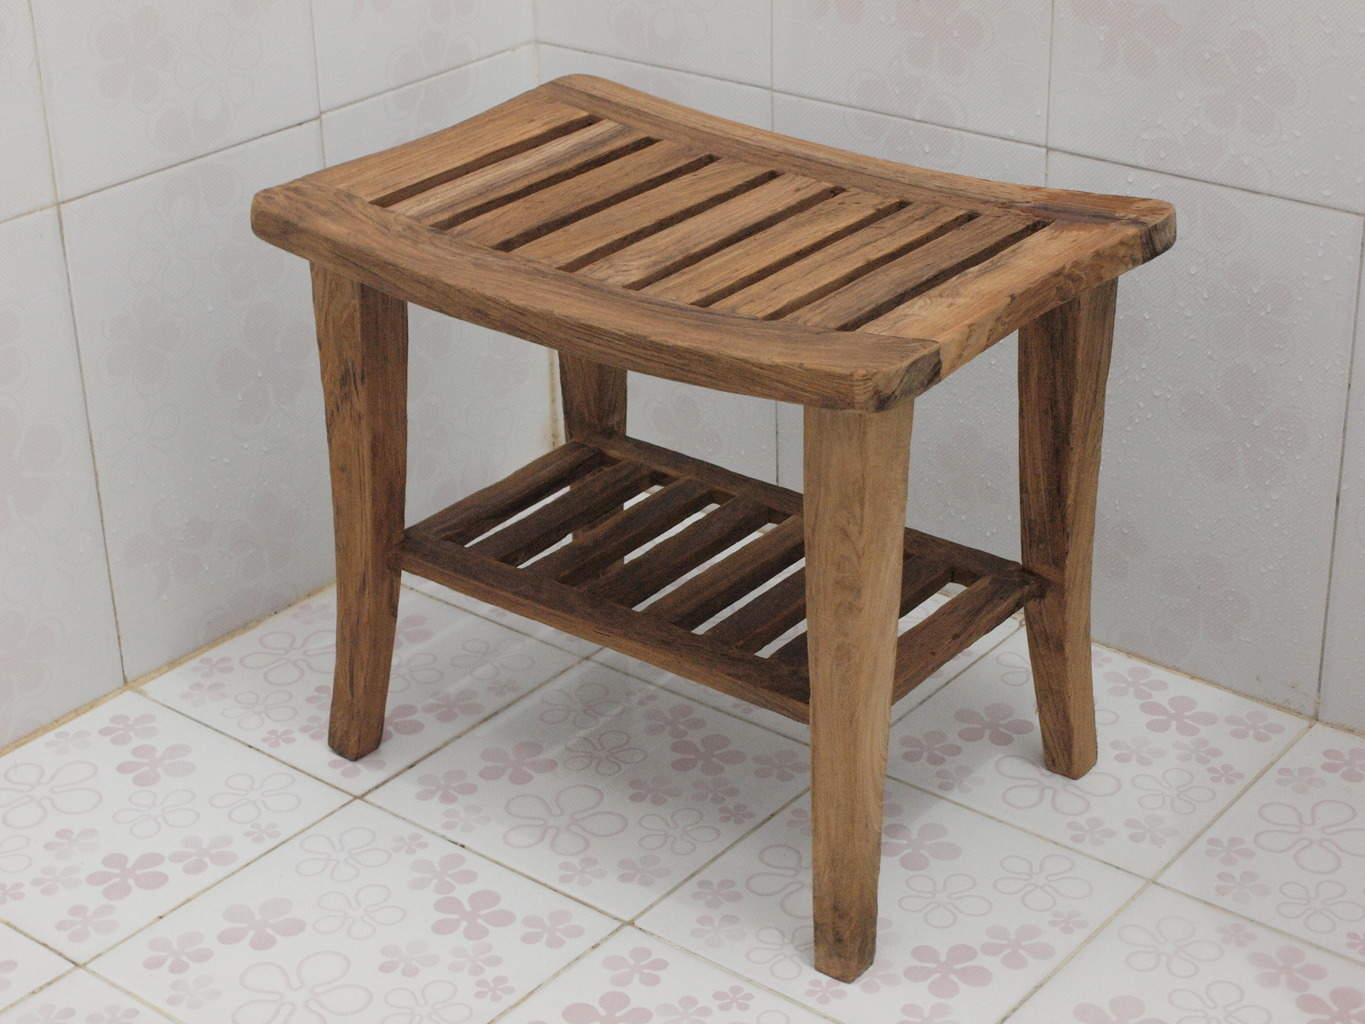 Special Bagoes Teak Shower Bench After Years Abused Teak Shower Bench Bagoes Teak Furniture Indonesian Teak Garden Teak Shower Bench Plans Teak Shower Bench Walmart houzz 01 Teak Shower Bench